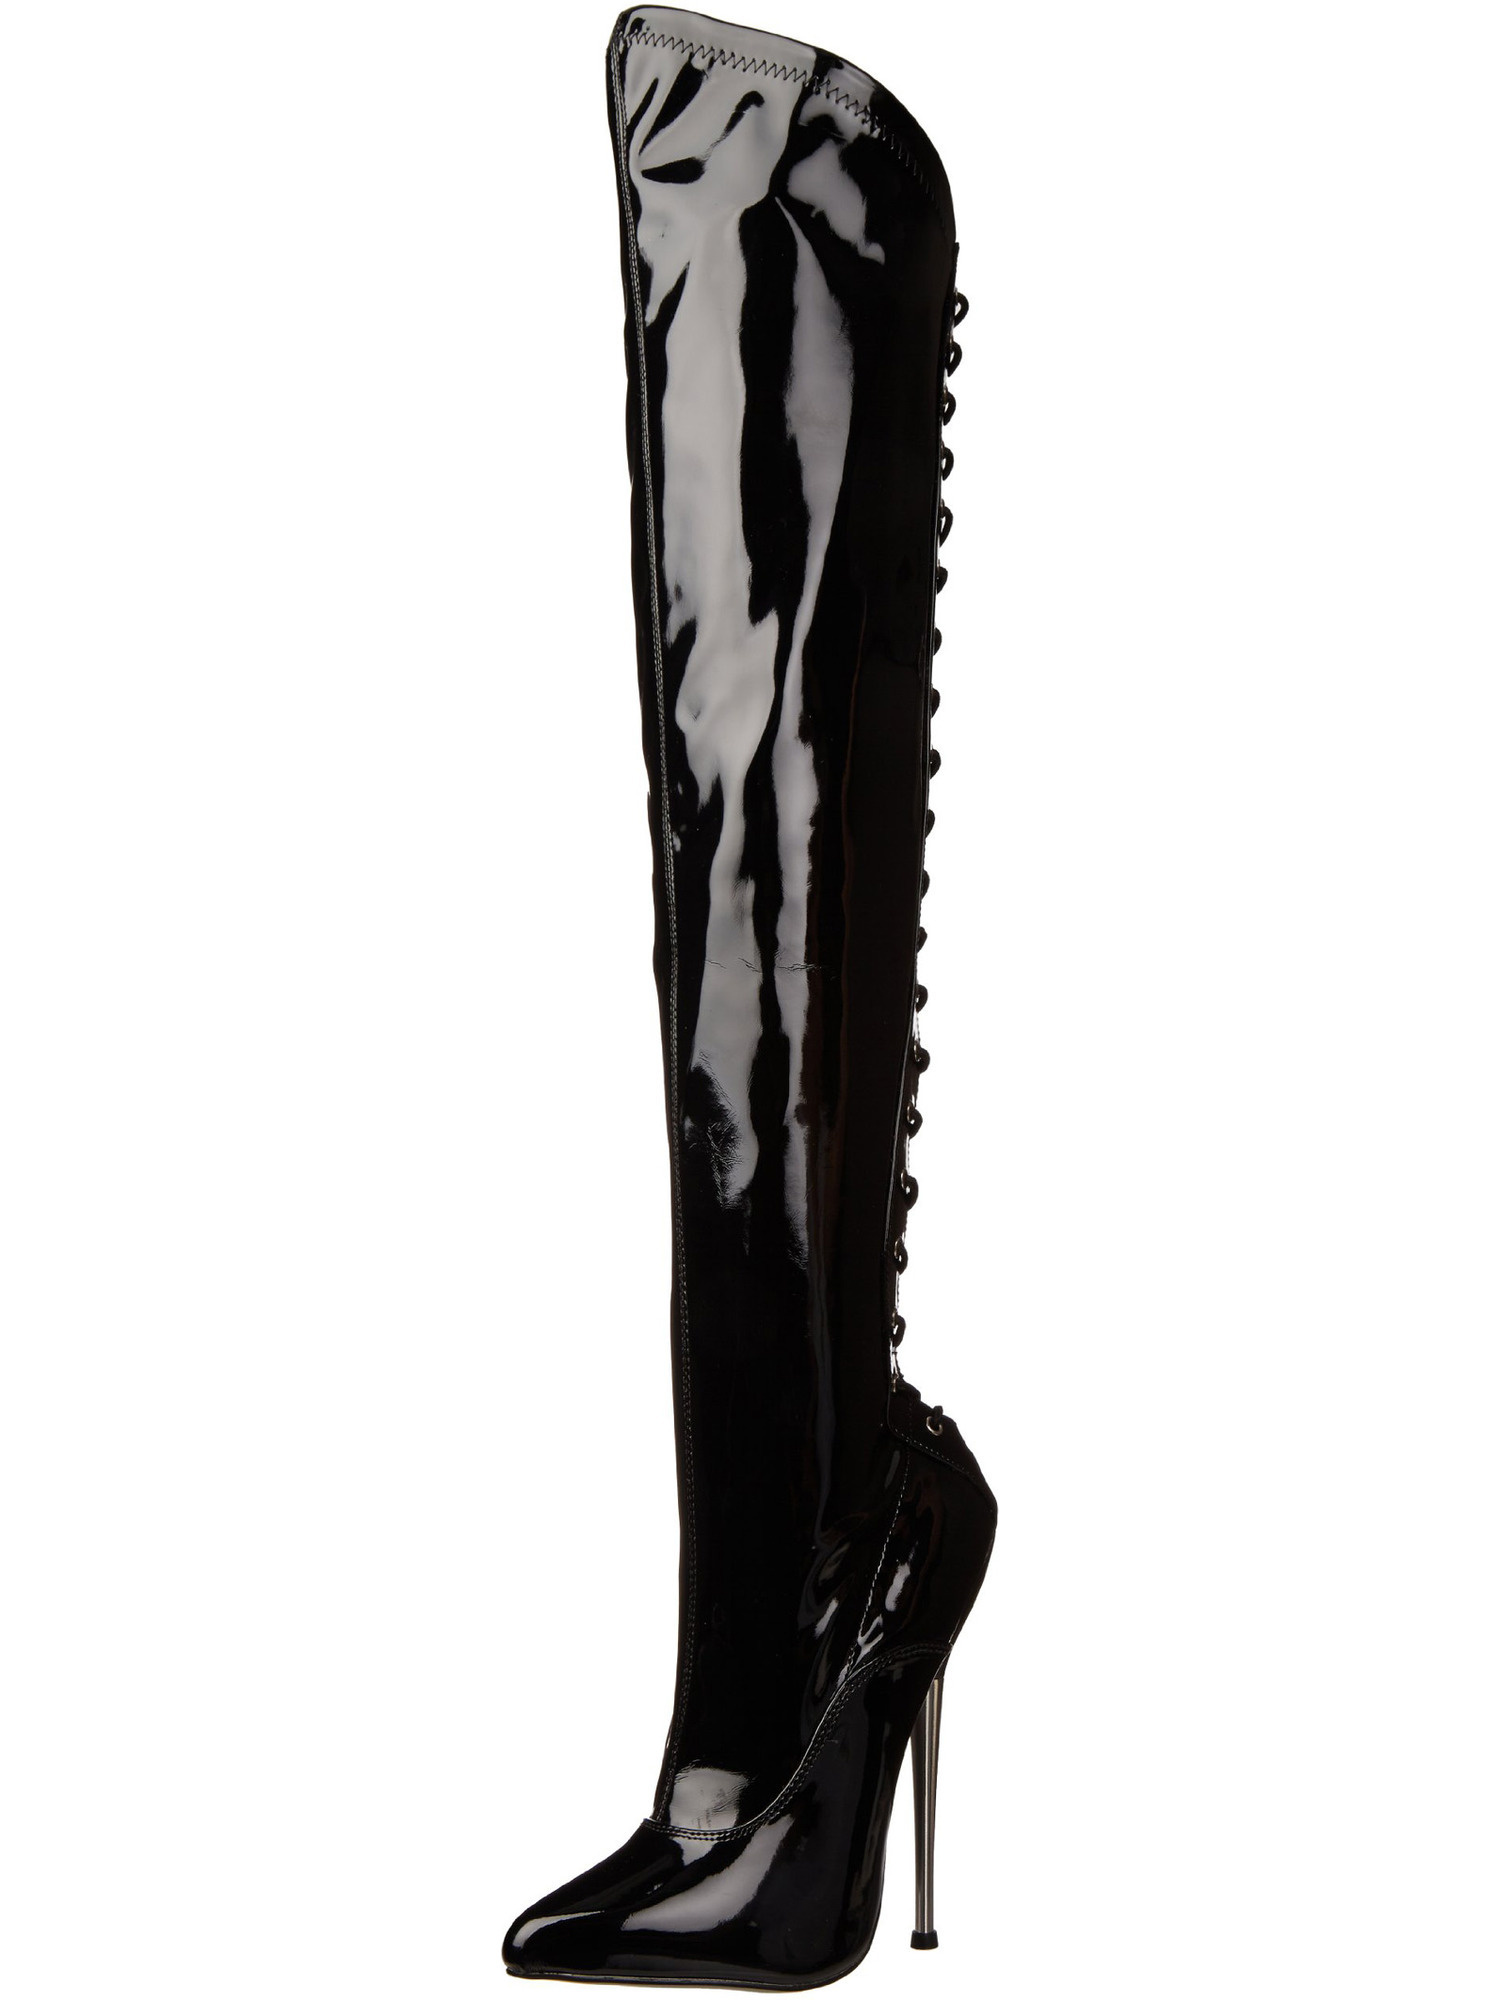 Asymmetrical Thigh High Black Boots with Brass 6.25 Inch Heels Lace Up Back